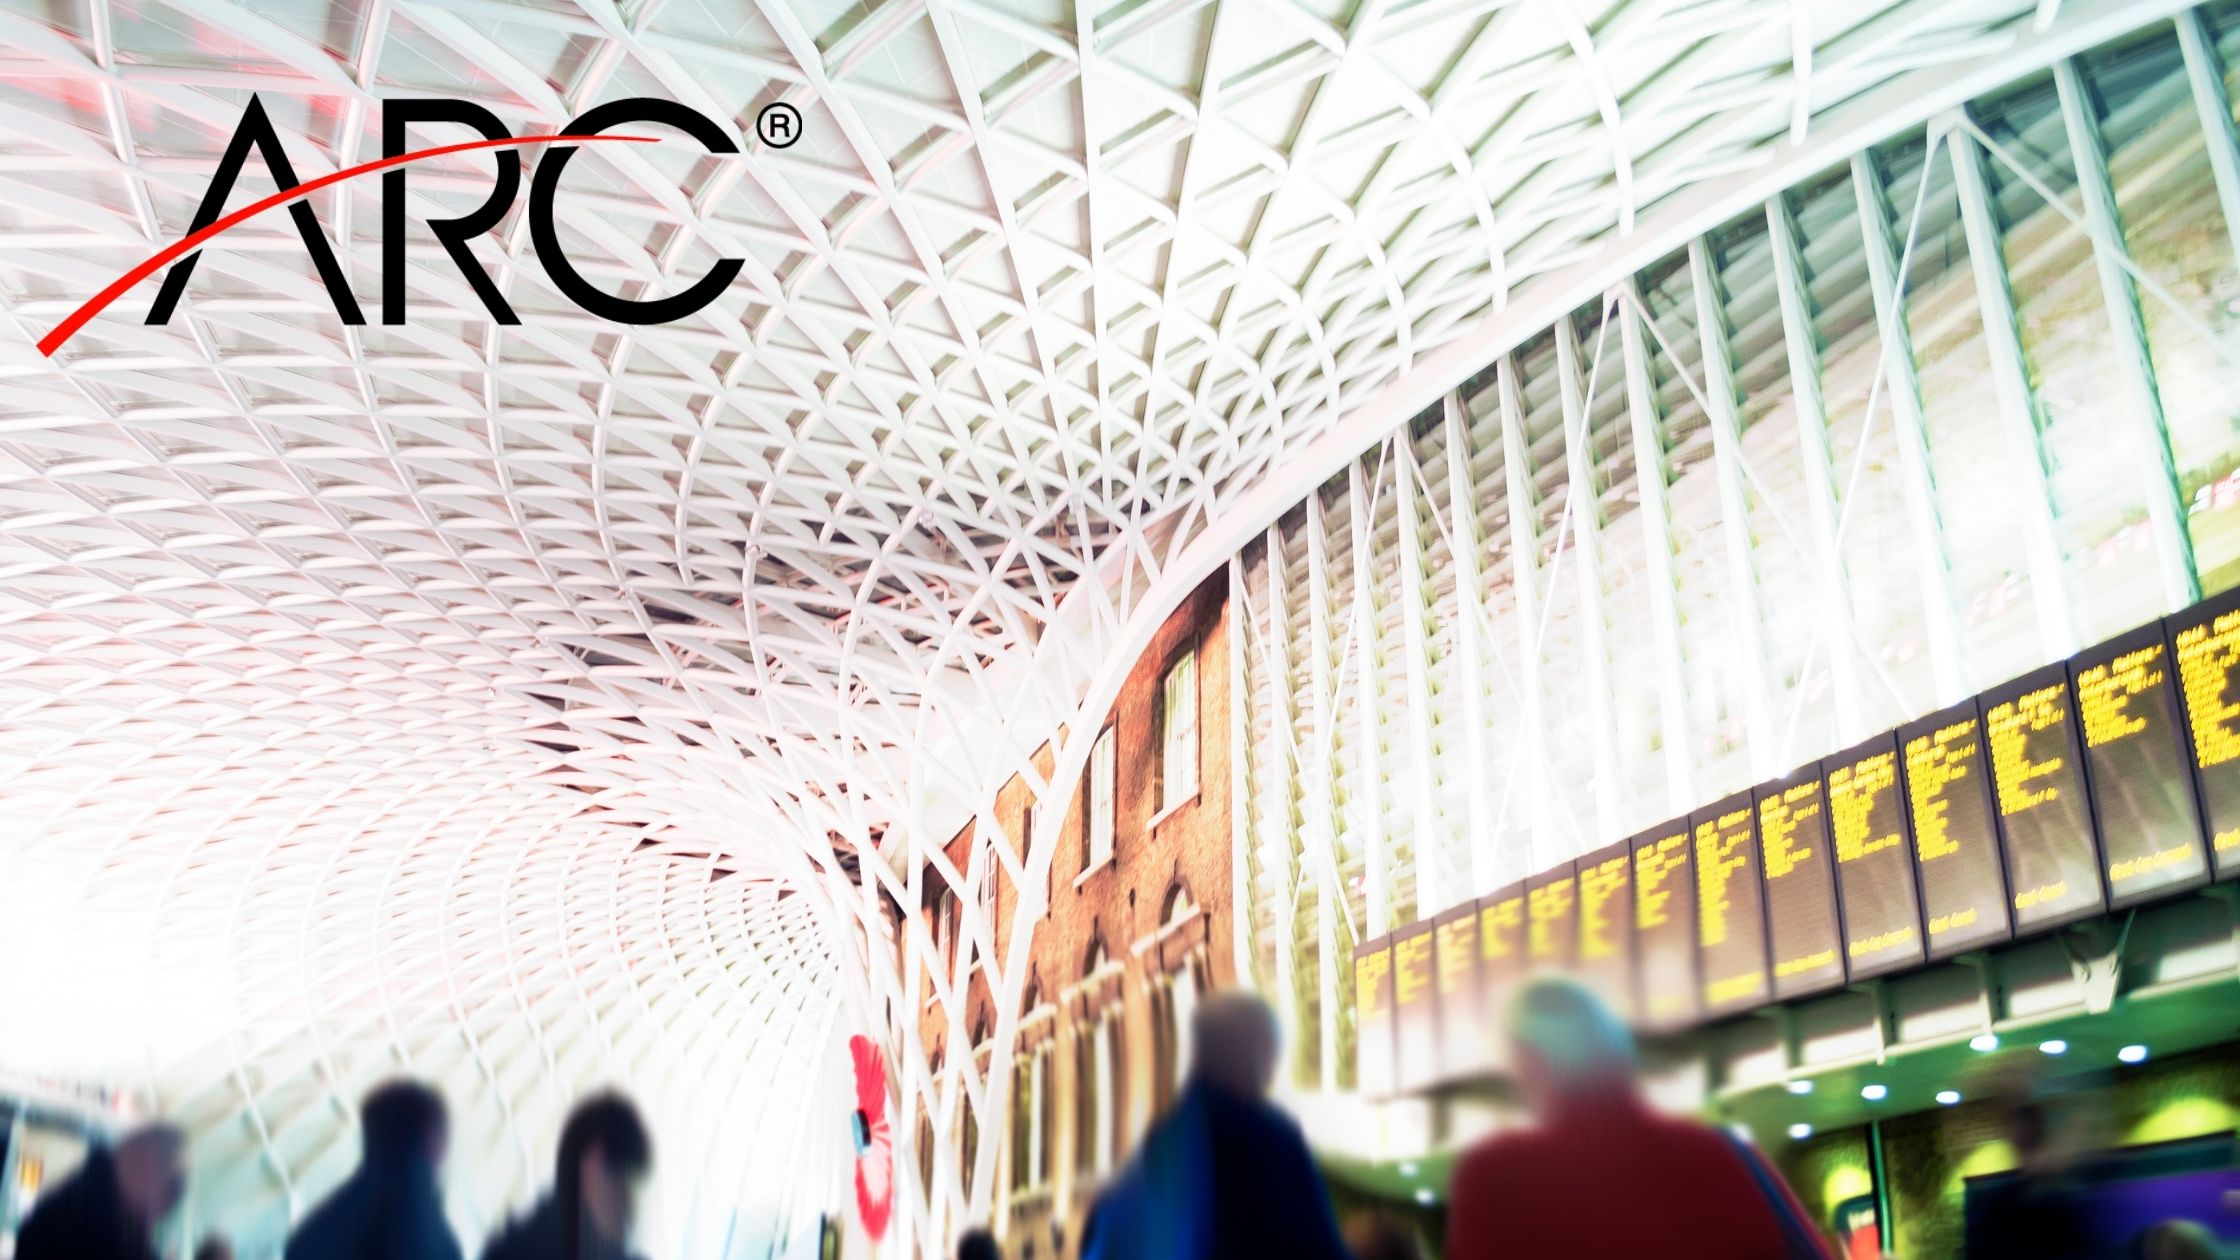 ARC has created an oasis of stunning visual vibrancy, within the beating heart of London!